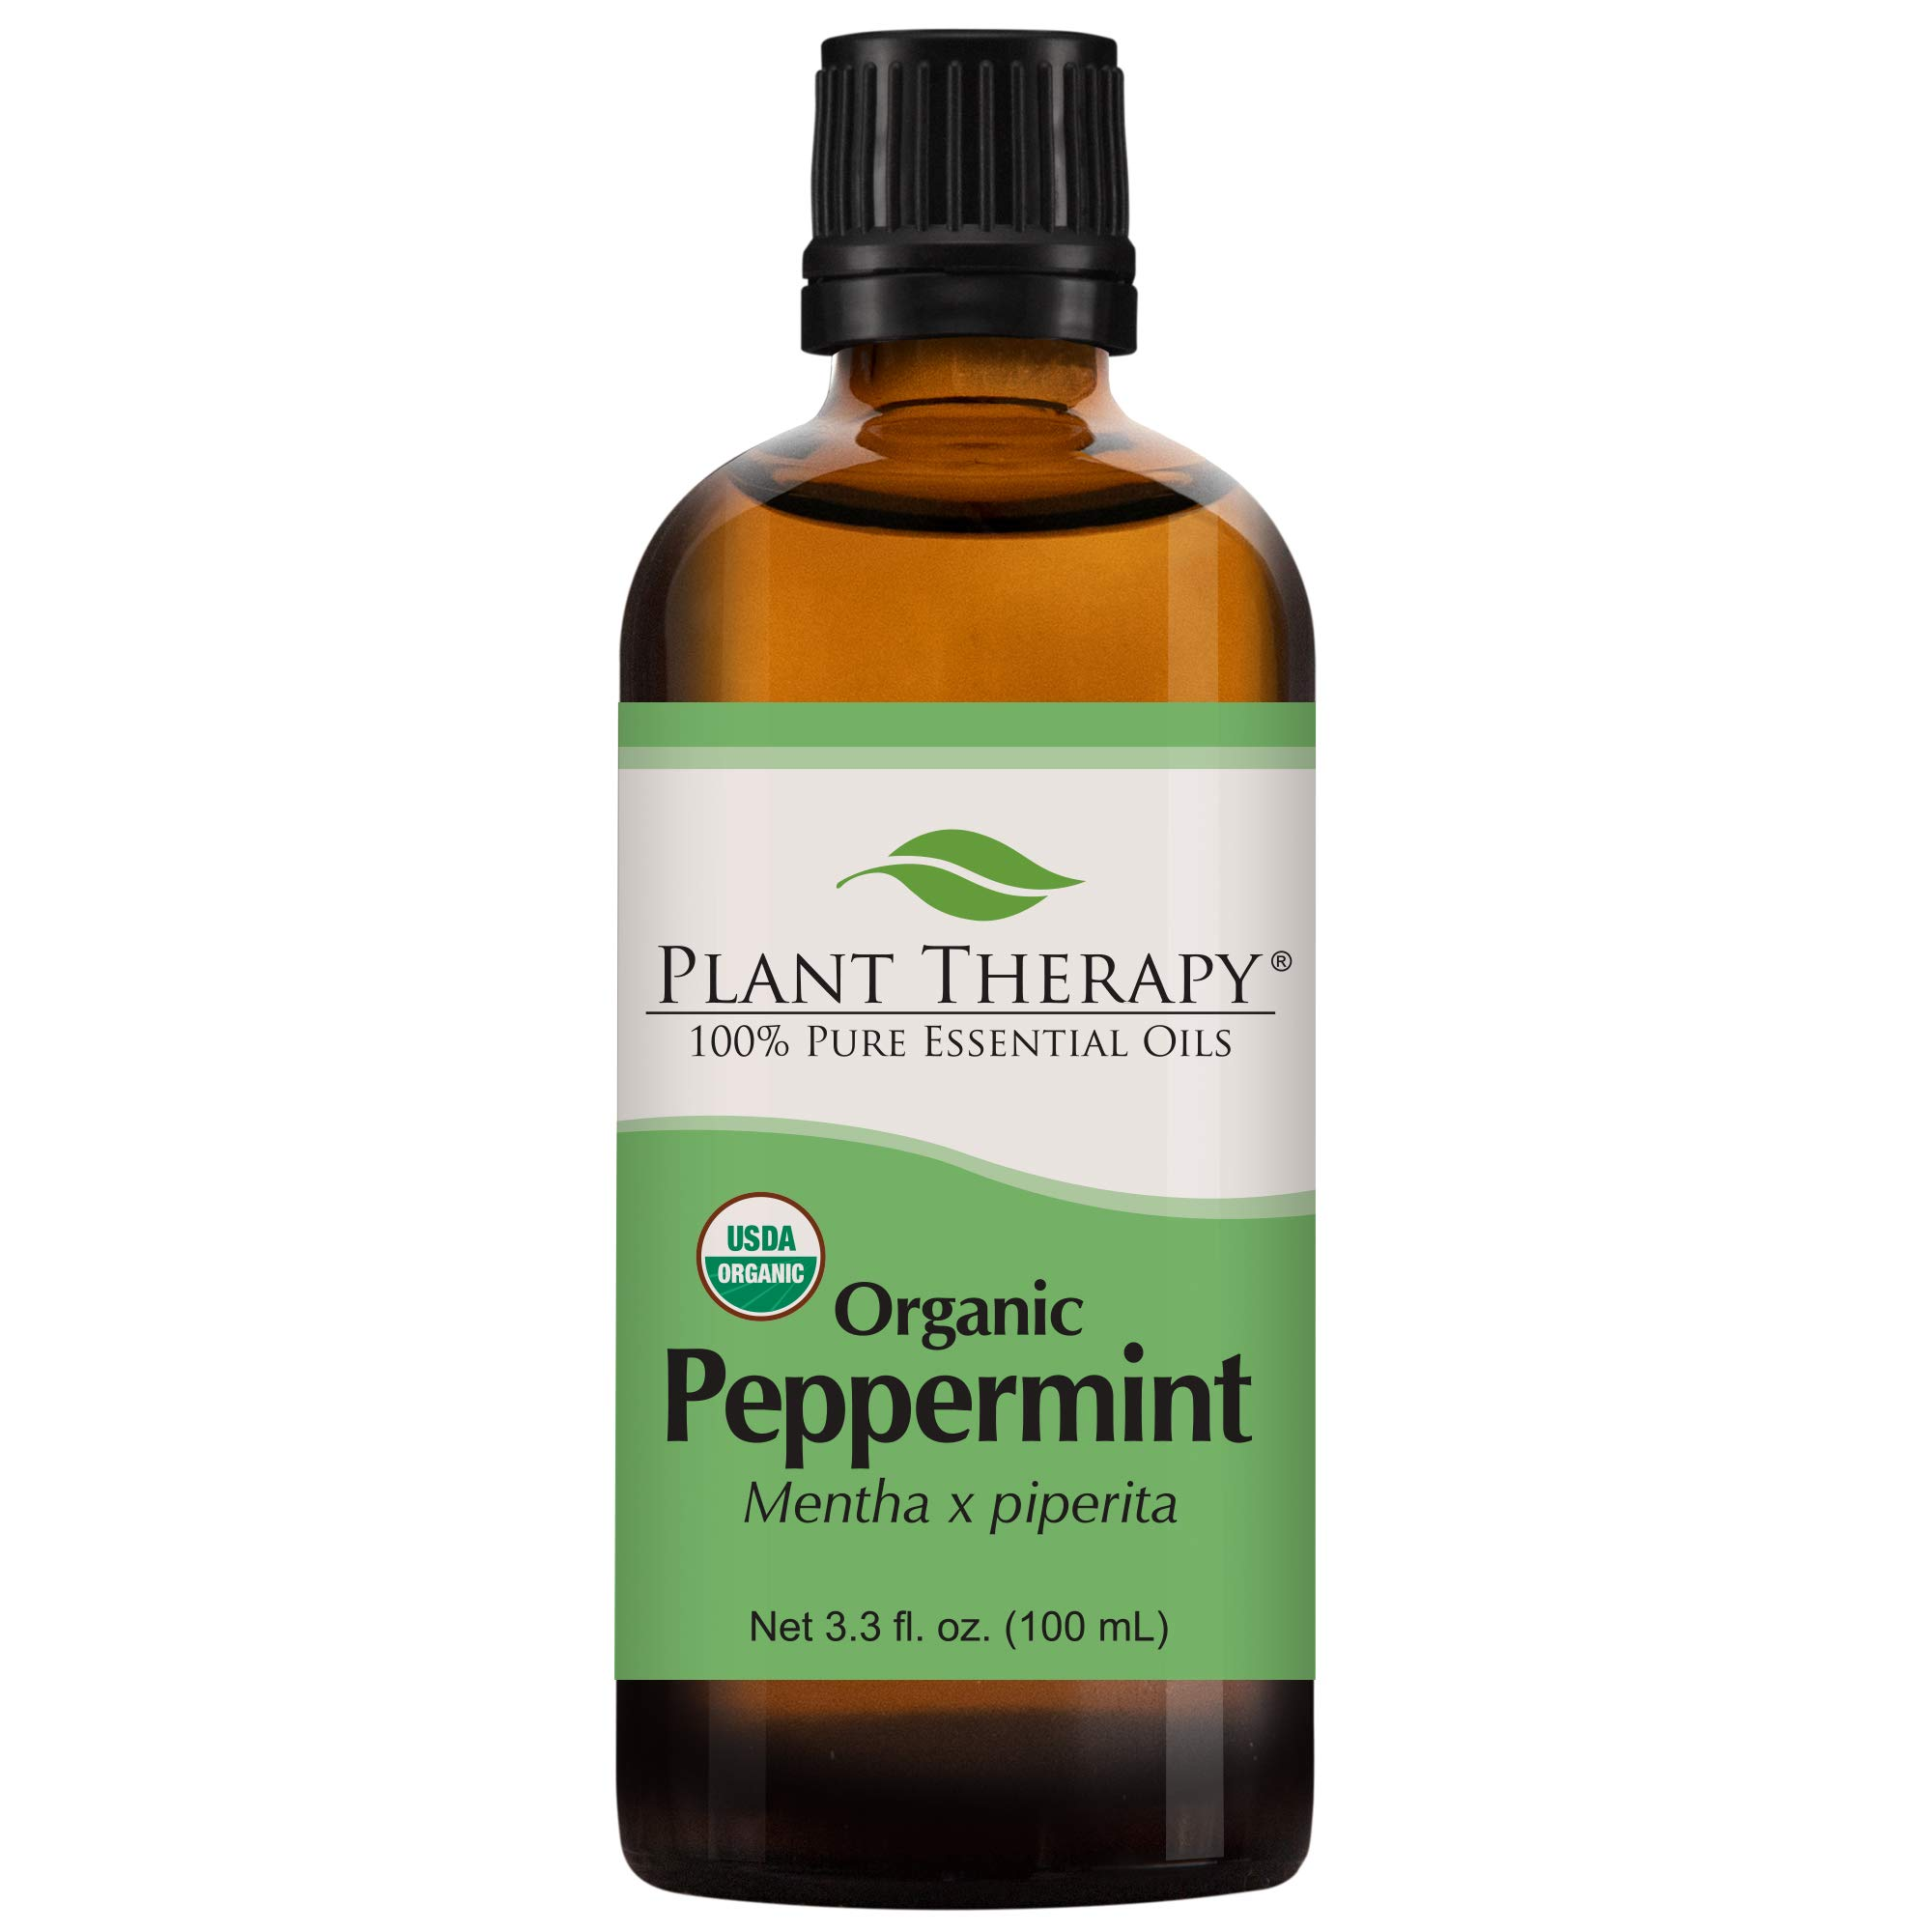 Plant Therapy Peppermint Organic Essential Oil 100% Pure, Usda Certified Organic, Undiluted, Natural Aromatherapy, Therapeutic Grade 100 Ml (3oz)